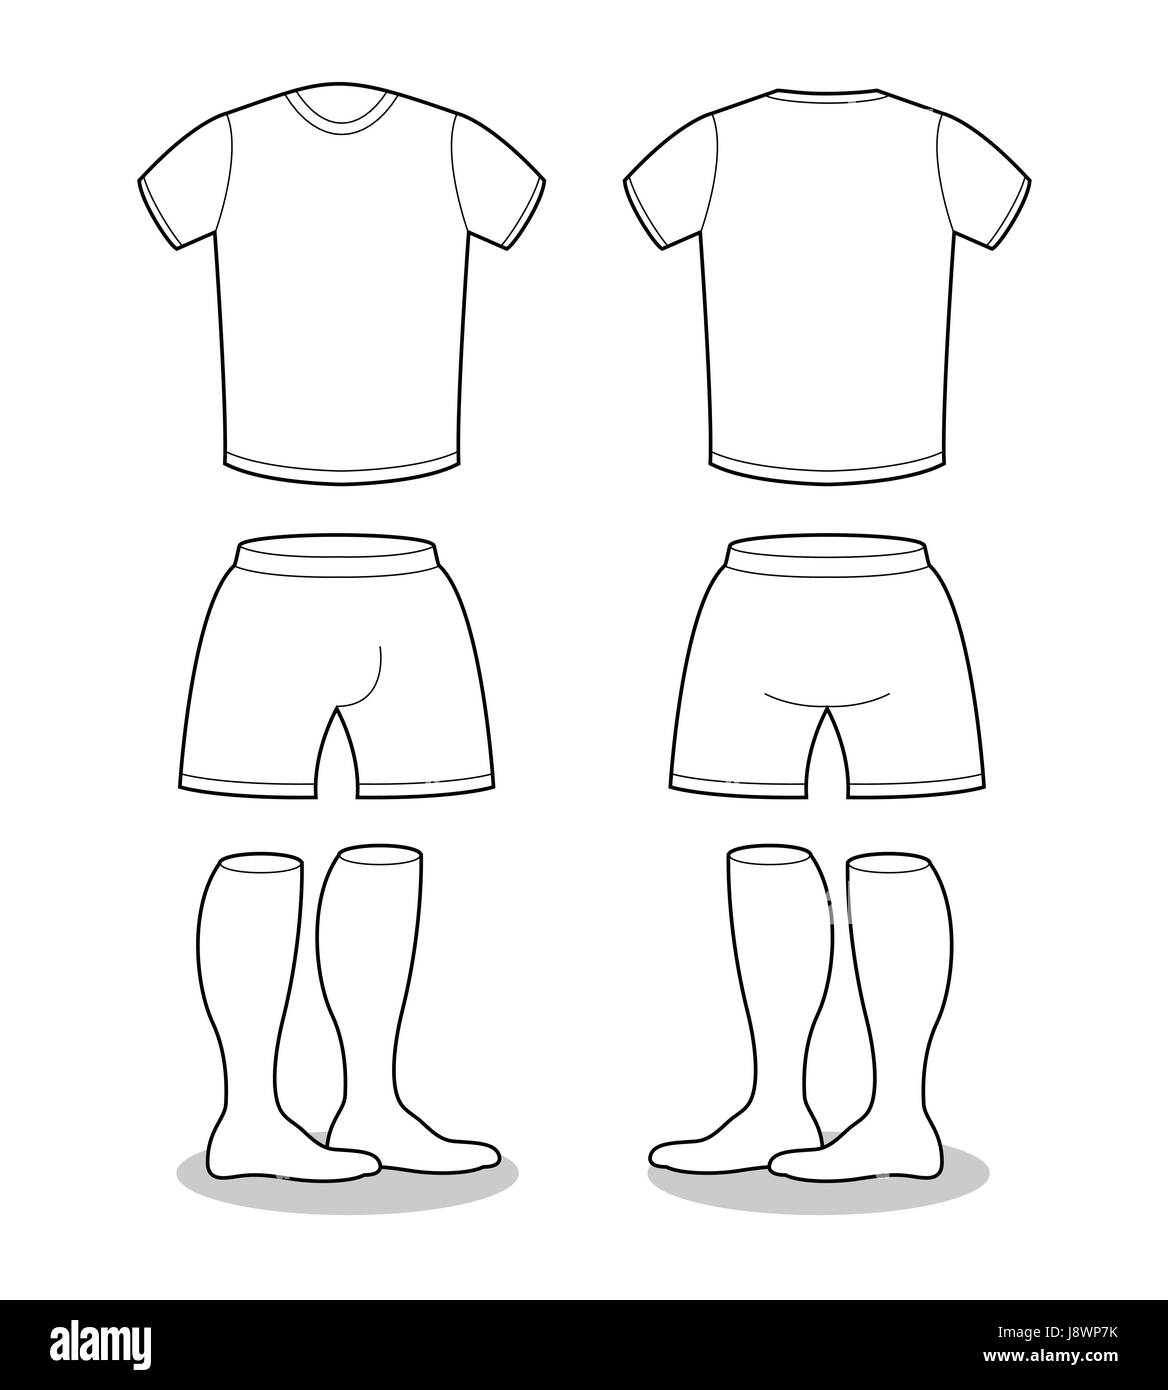 Sample For Sports Clothing Soccer T Shirt Shorts And Socks Template Design Football Shape Blank Curve